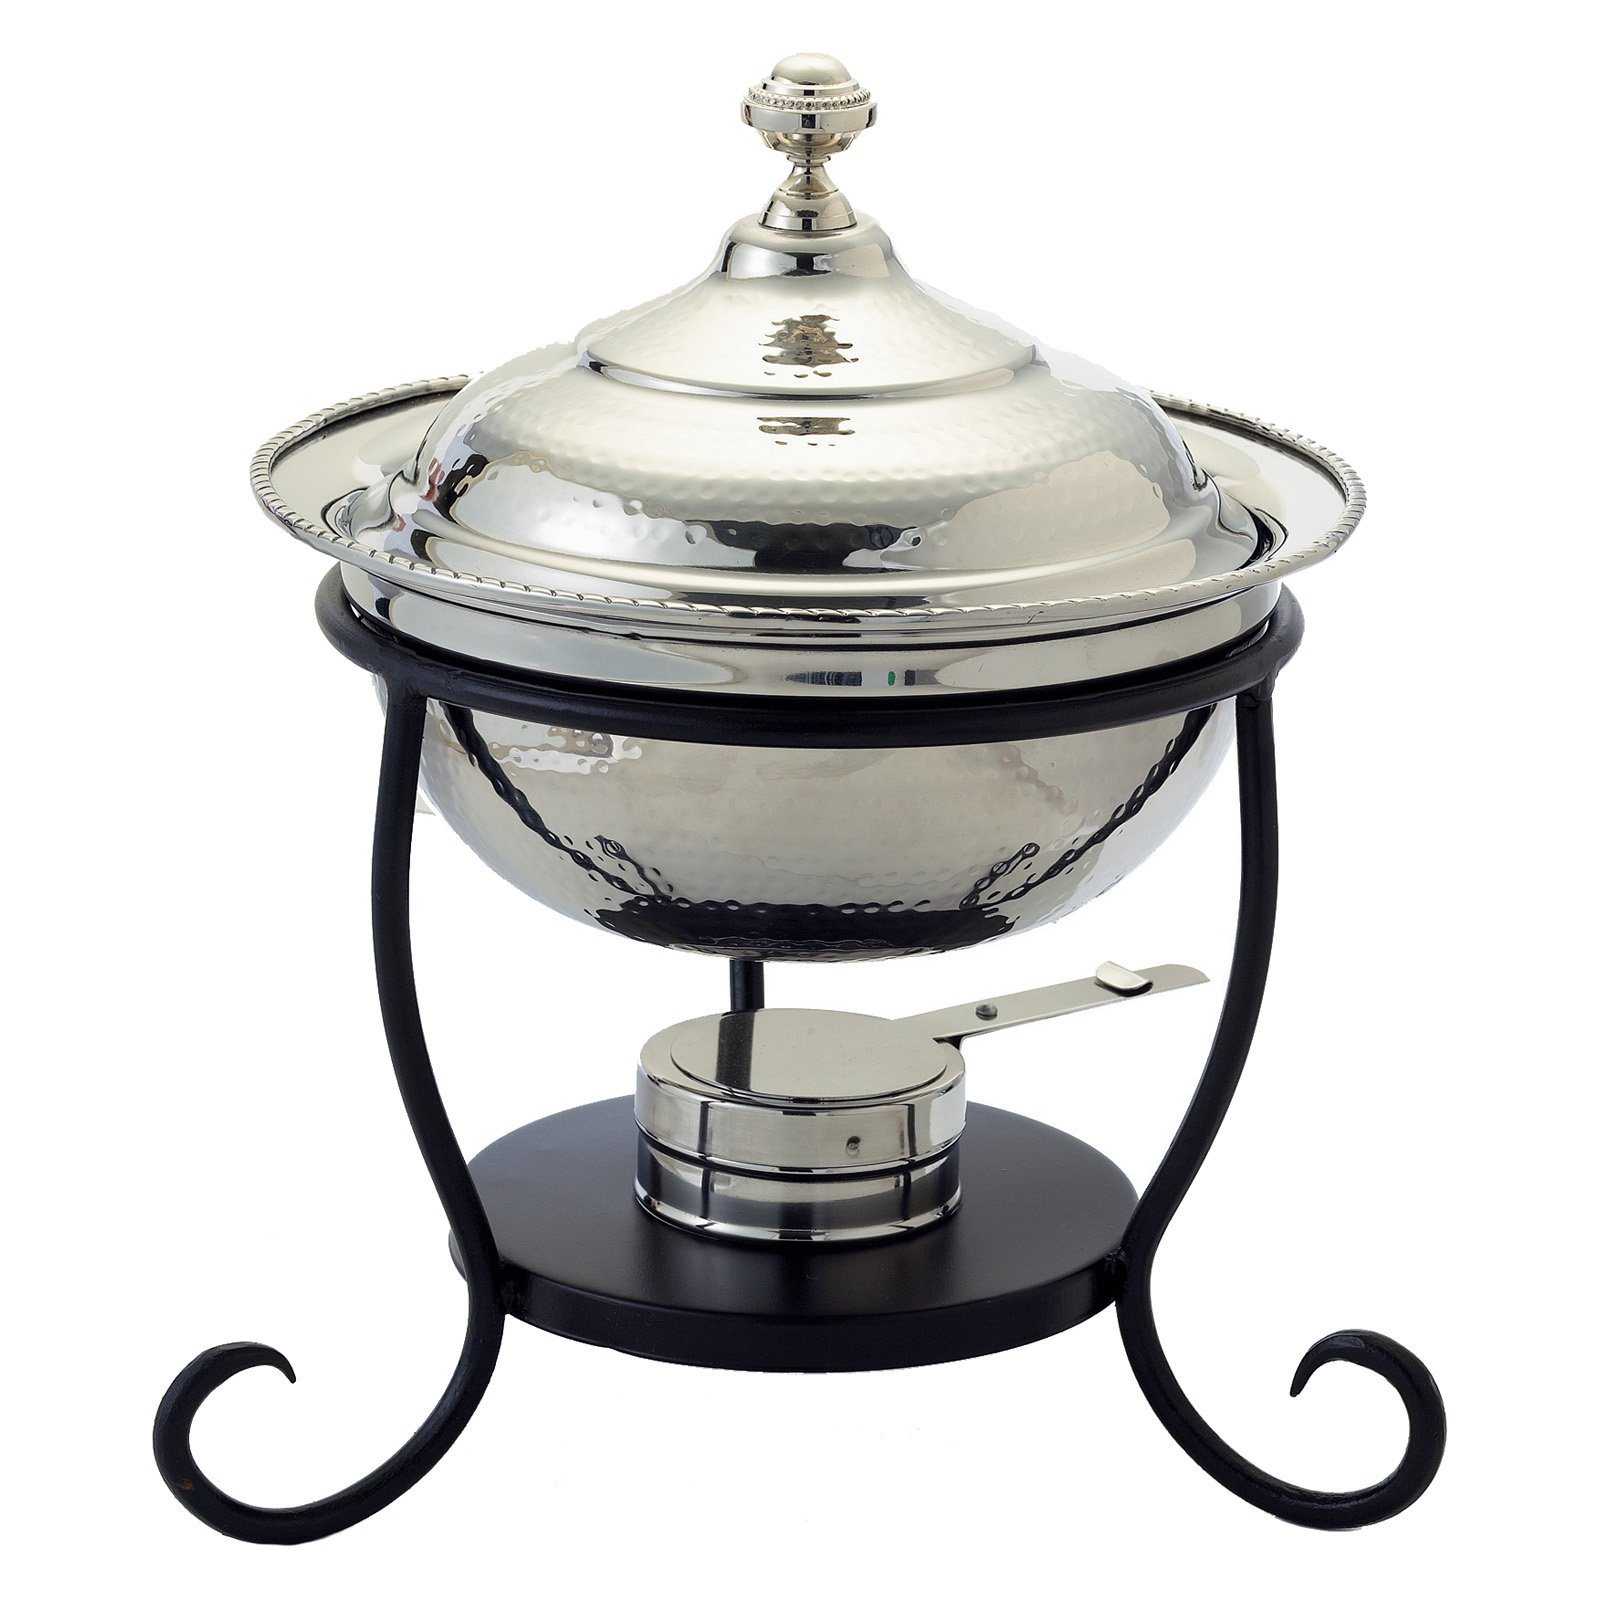 Old Dutch 681 Round Stainless Steel Chafing Dish